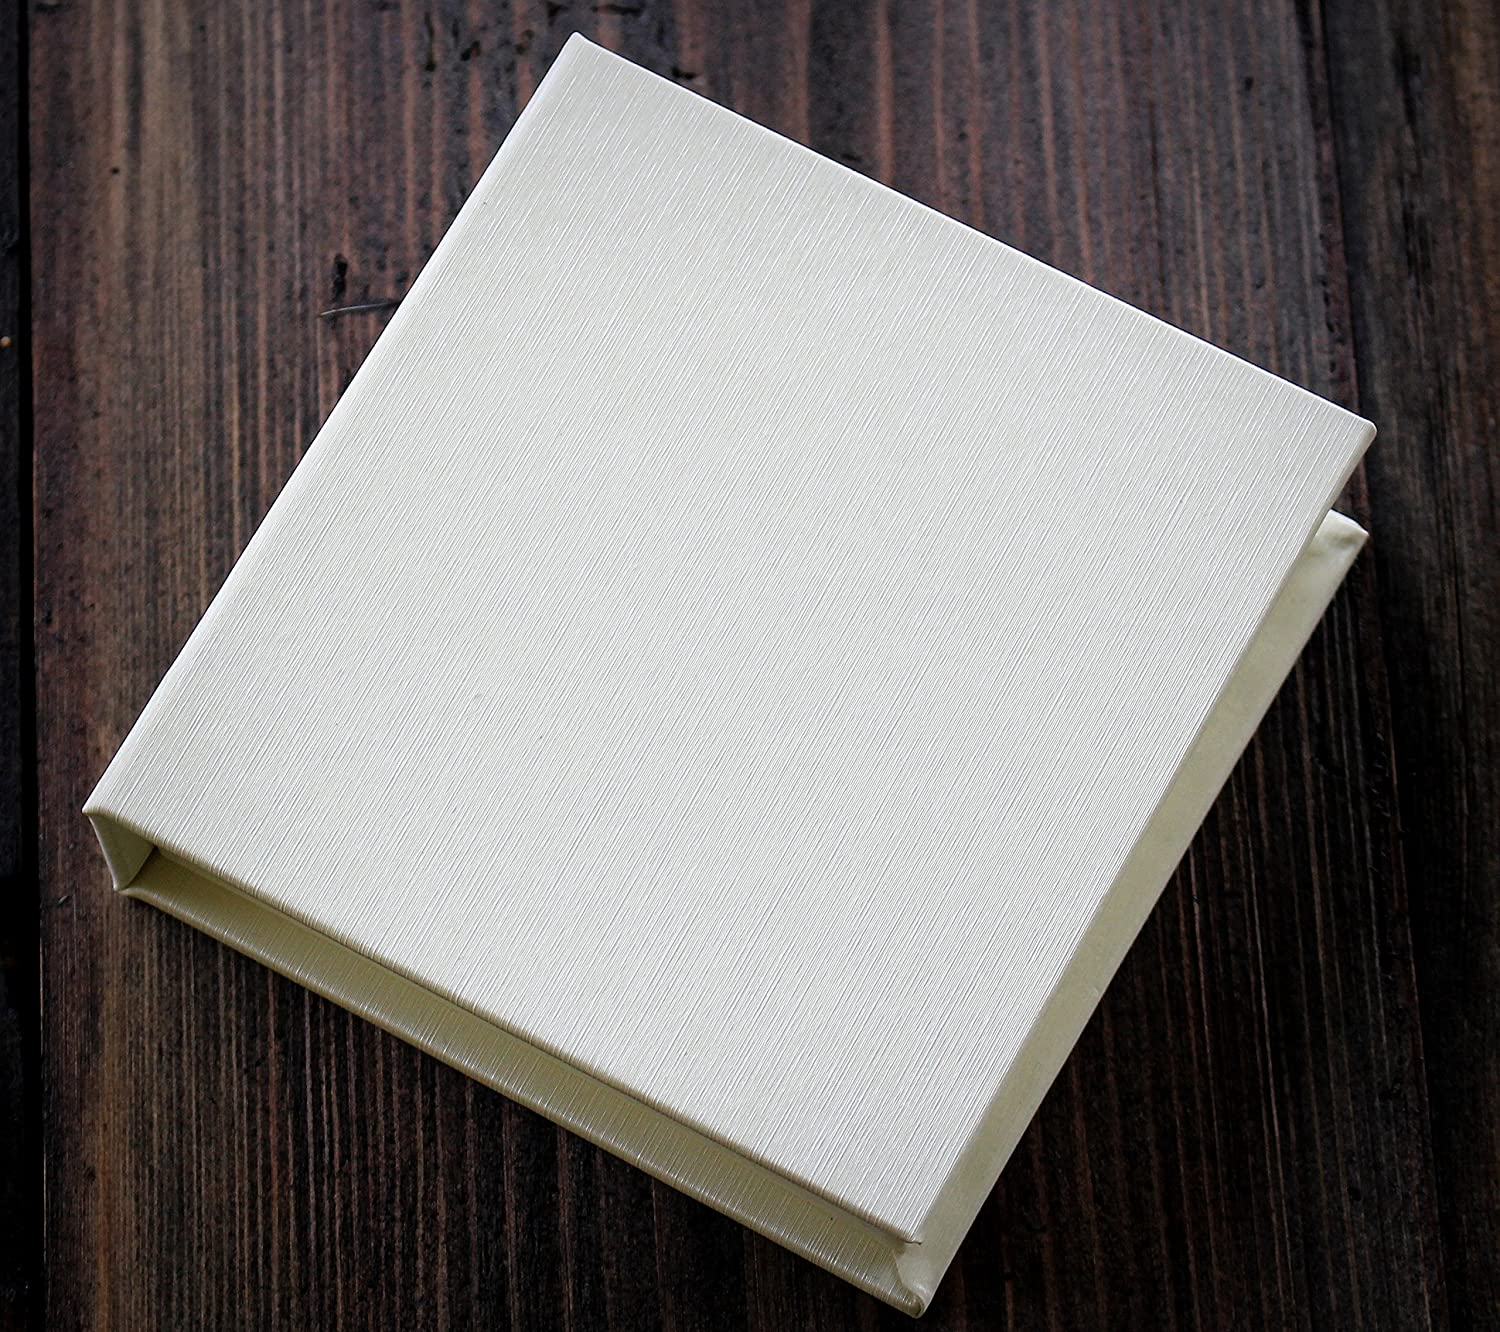 Magnet Closure Gift Box Engag specialty ! Super beauty product restock quality top! shop Ivory Wedding